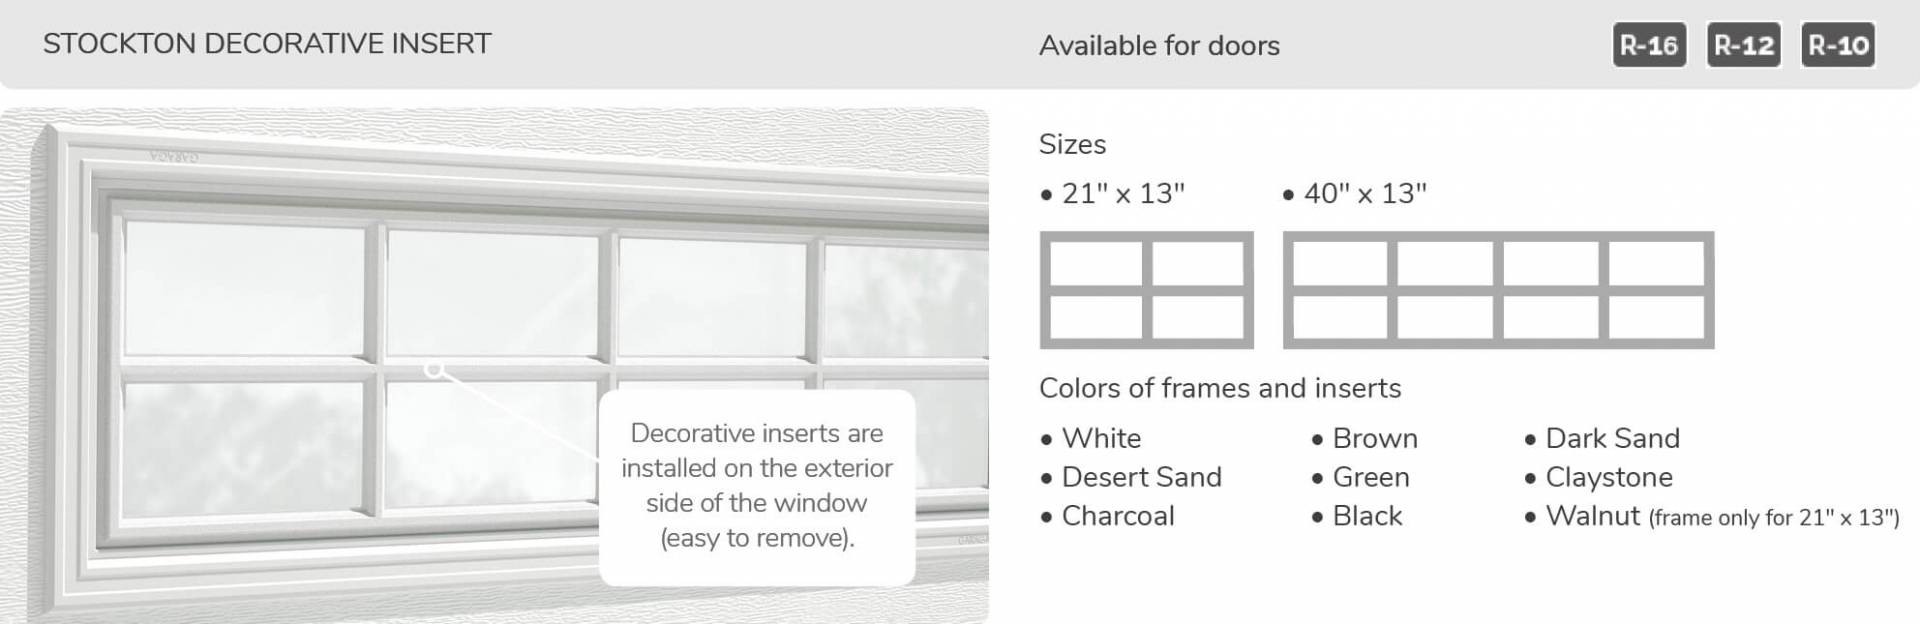 Stockton Decorative Inserts, 21' x 13' and 40' x 13', available for doors R-16, R-12, R-10